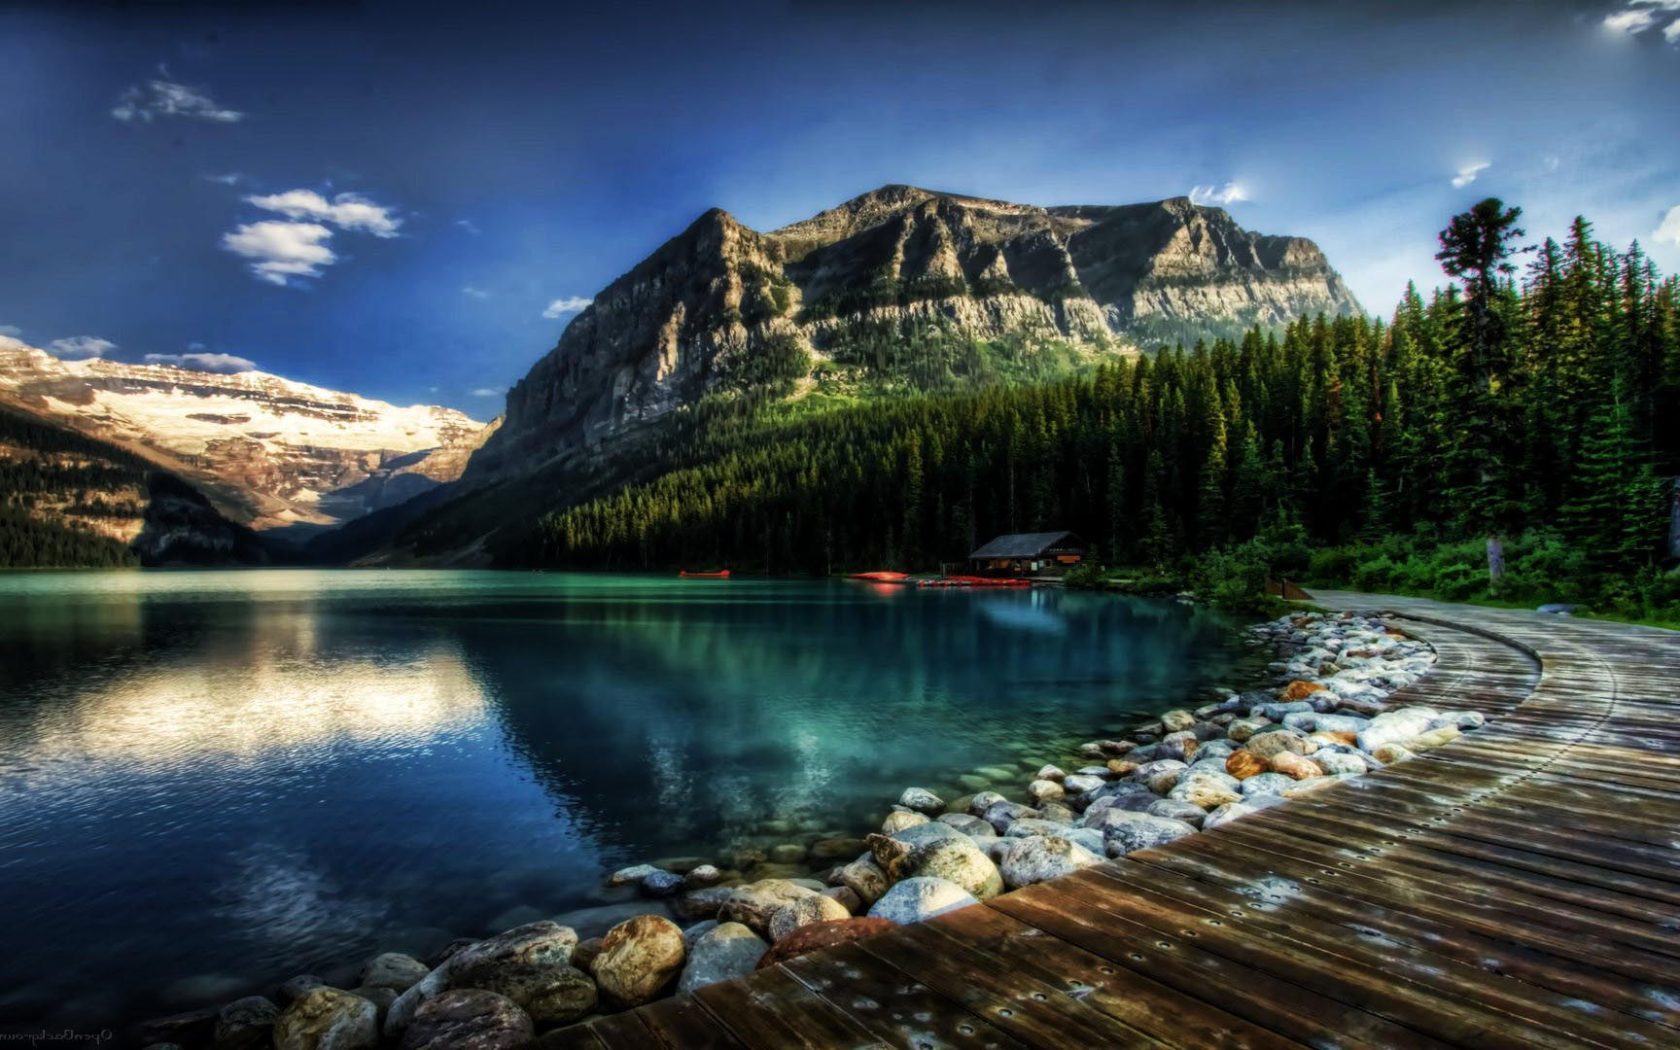 High Resolution Fall Wallpaper Lake Louise Alberta Canada Fantastic Desktop Wallpaper